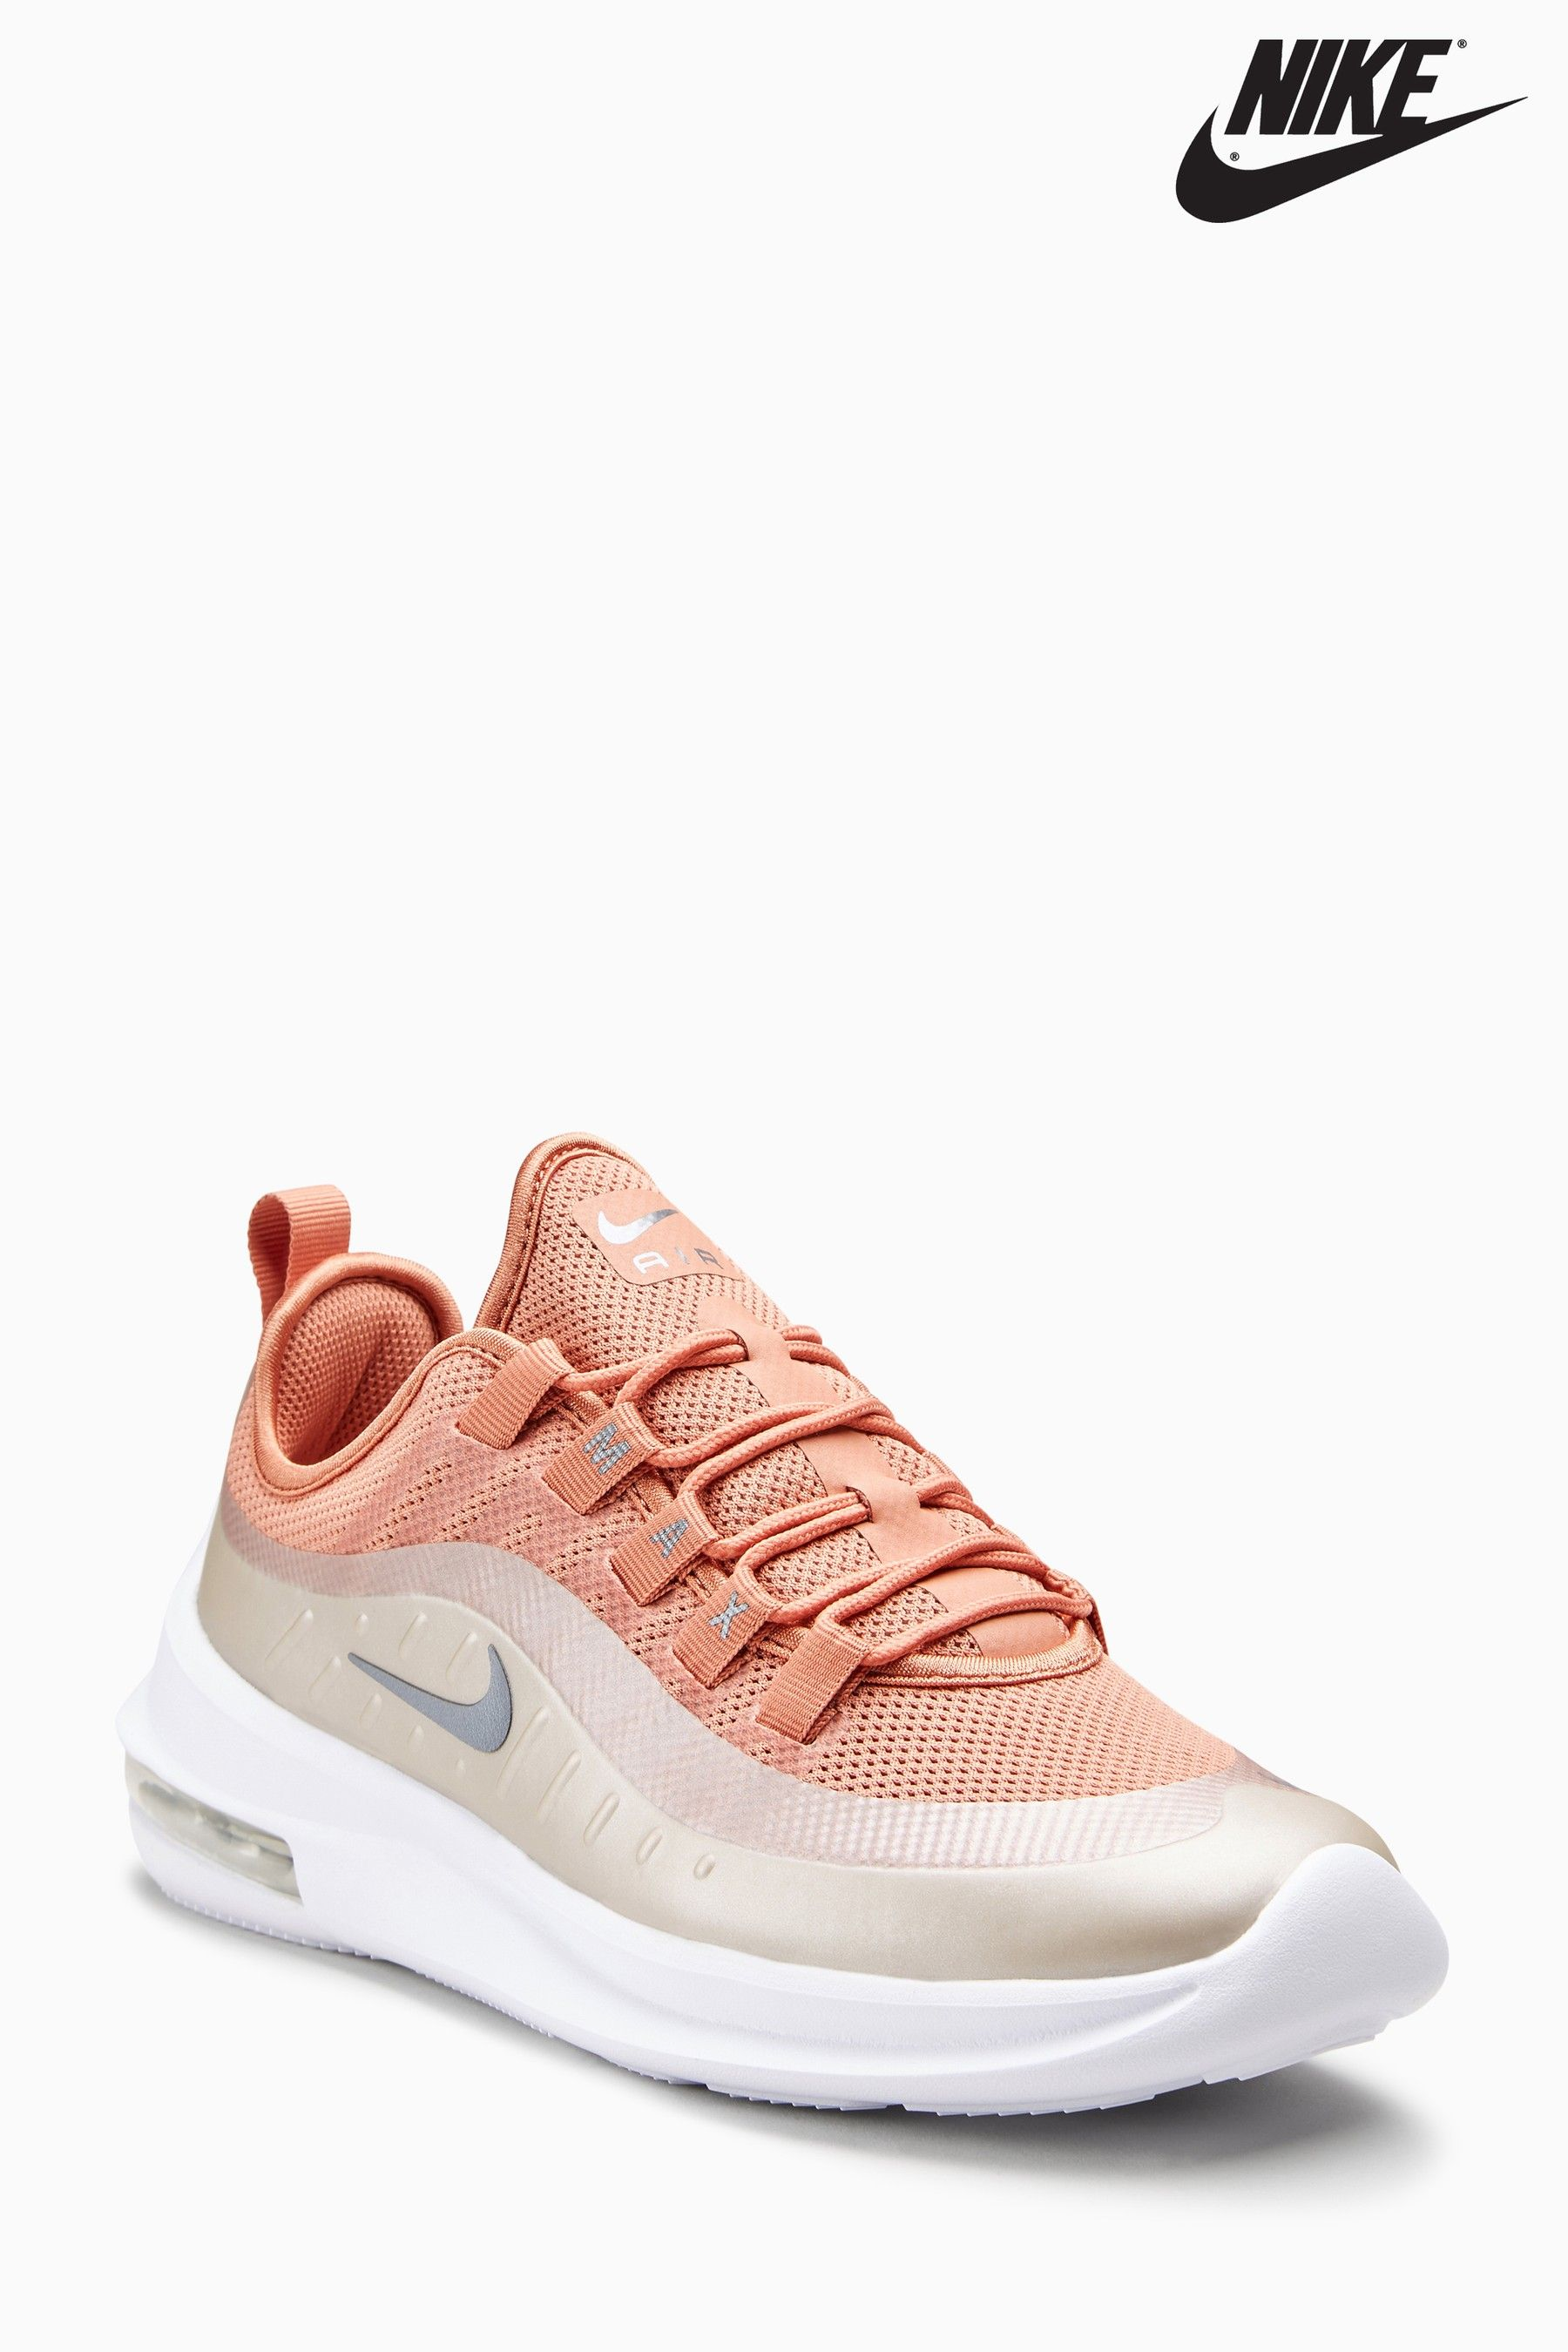 info for 58055 20794 Womens Nike Air Max Axis - Pink